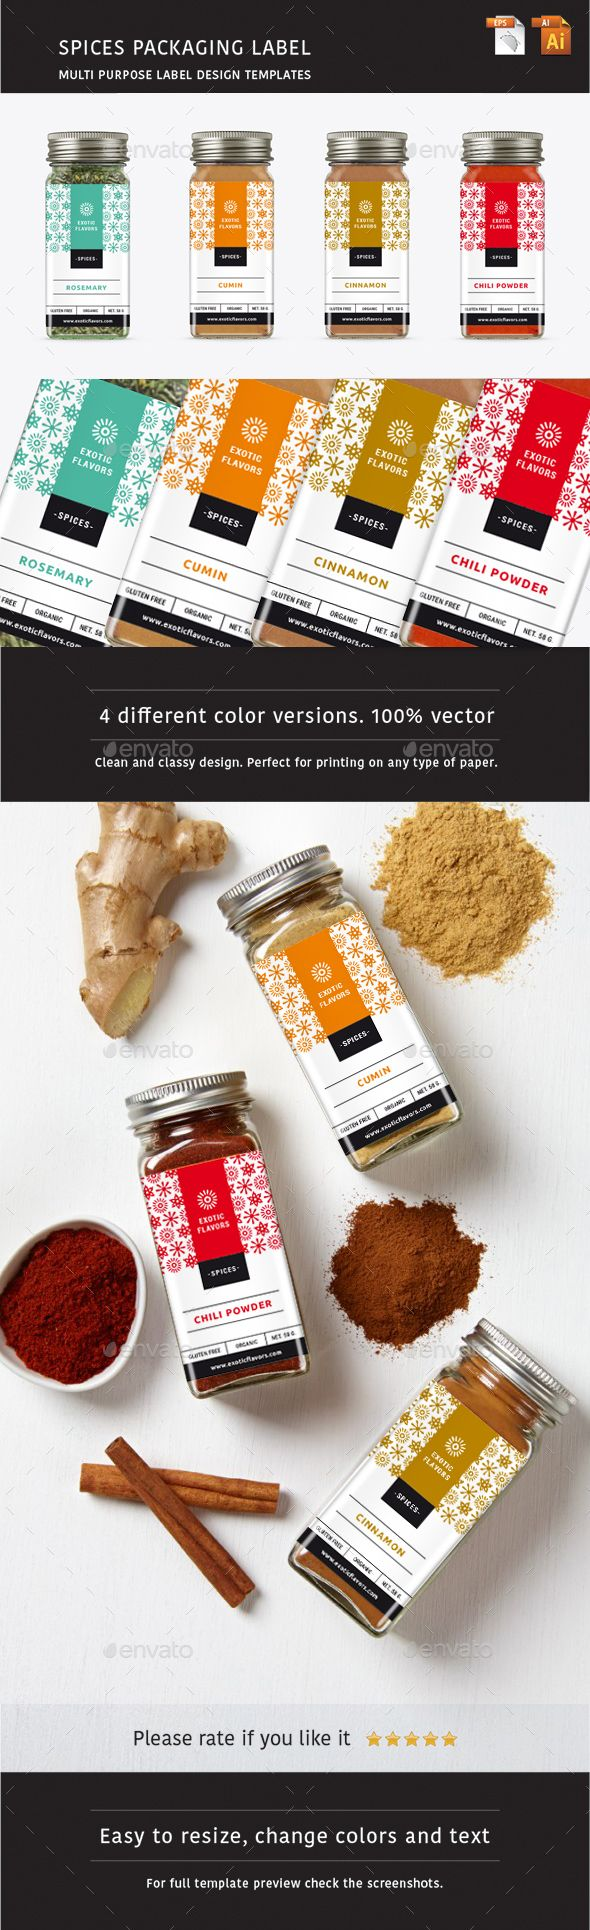 Spices Packaging Label ITEM DESCRIPTION: Clean and classy design. Four different colors. Files are easily editable. Fully vector files. Text/Font and Colors can be altered as needed. All Image are in vector format, so can customise easily. It can be used in Similar product too. Mockups are only for representational purposes.